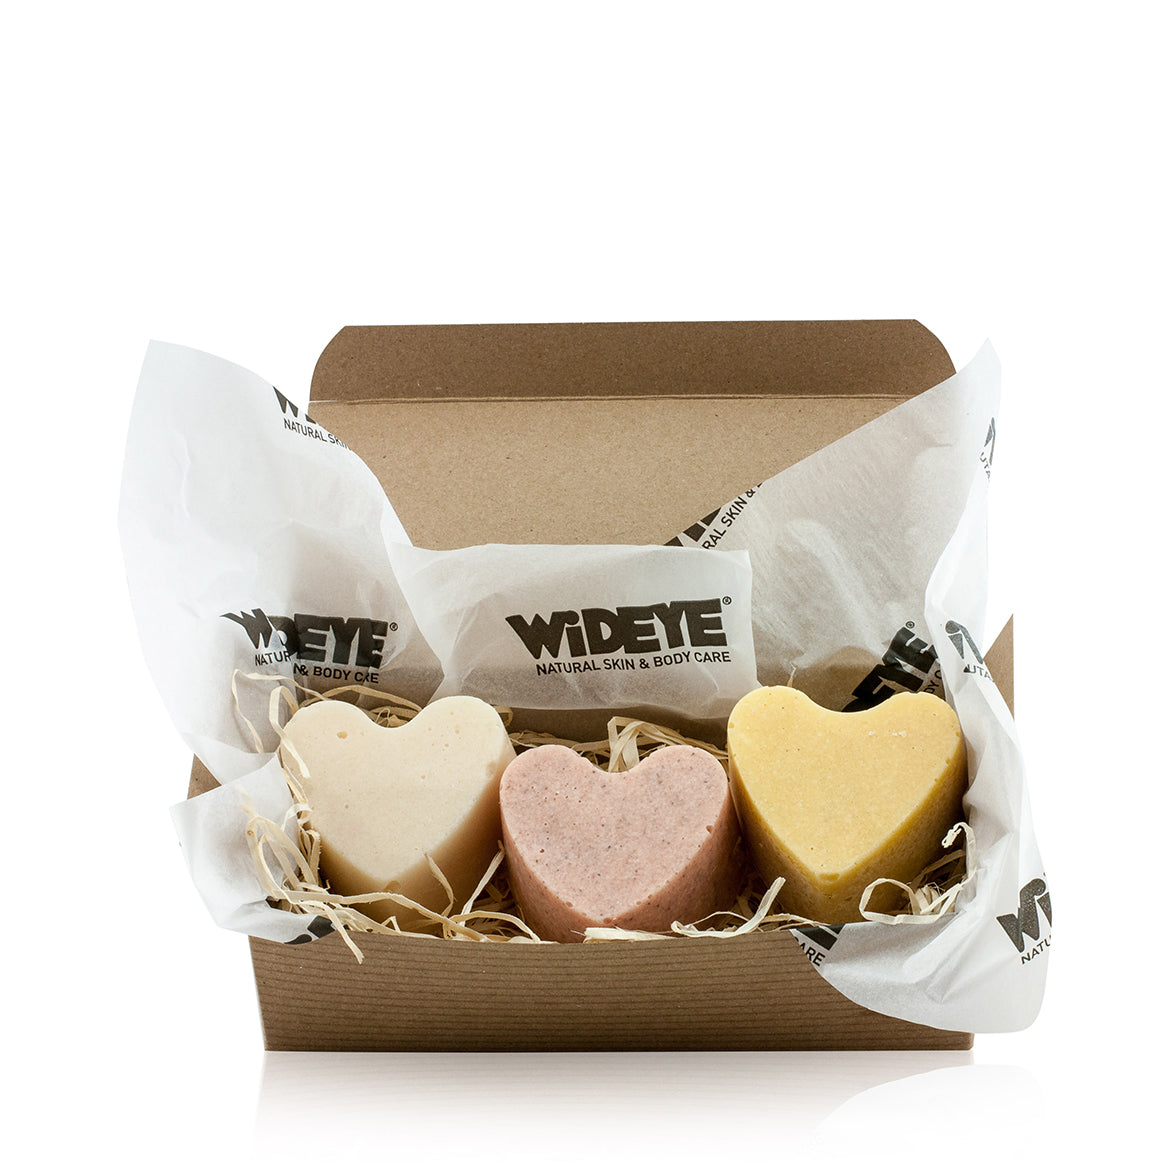 Natural vegan skincare Sugar Scrub gift box containing three sugar scrub exfoliating bars, handmade by WiDEYE in Rye.